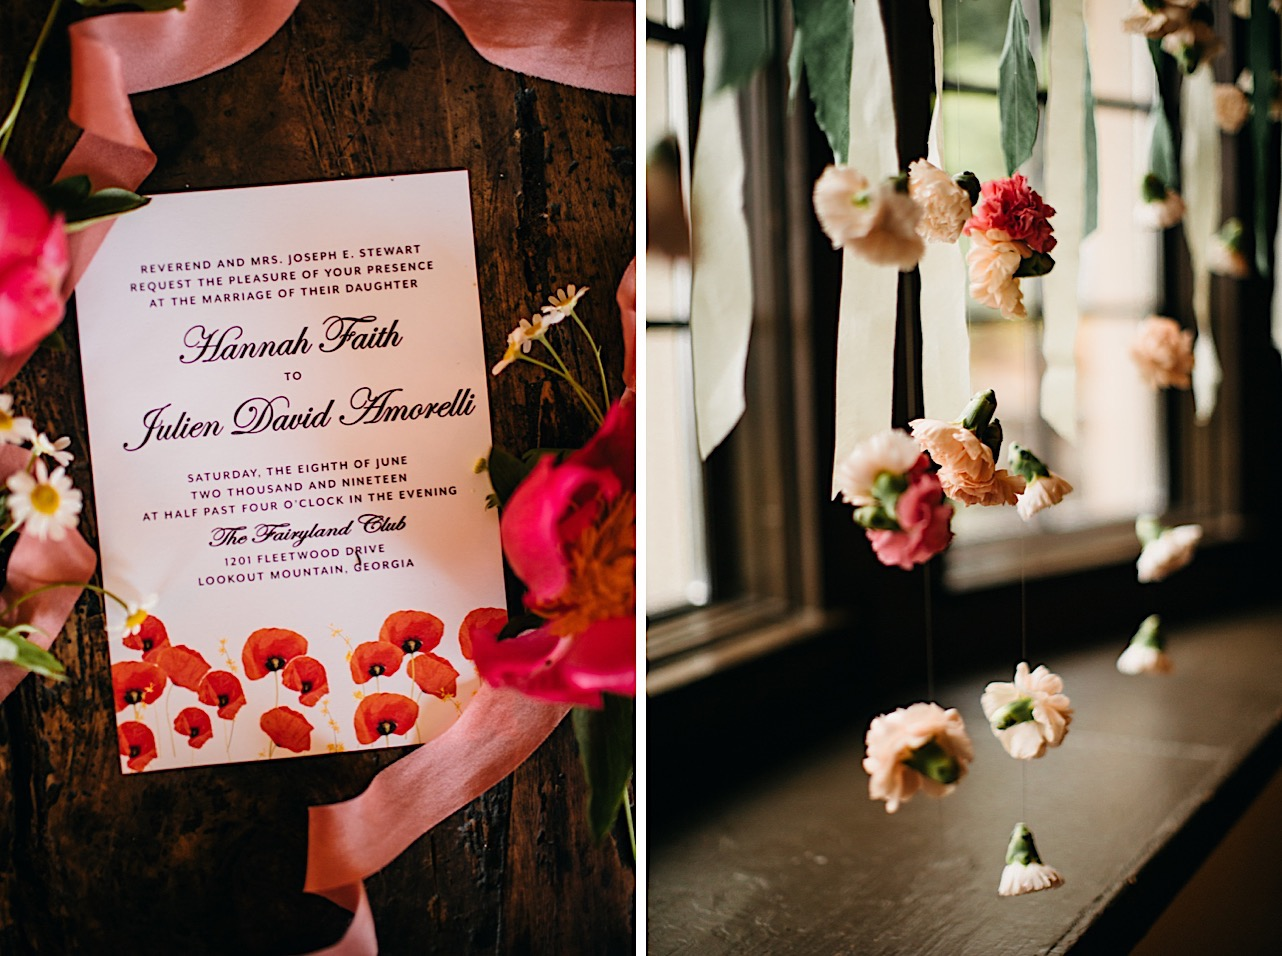 wedding invitation printed with red poppies surrounded with pink ribbon and small flowers